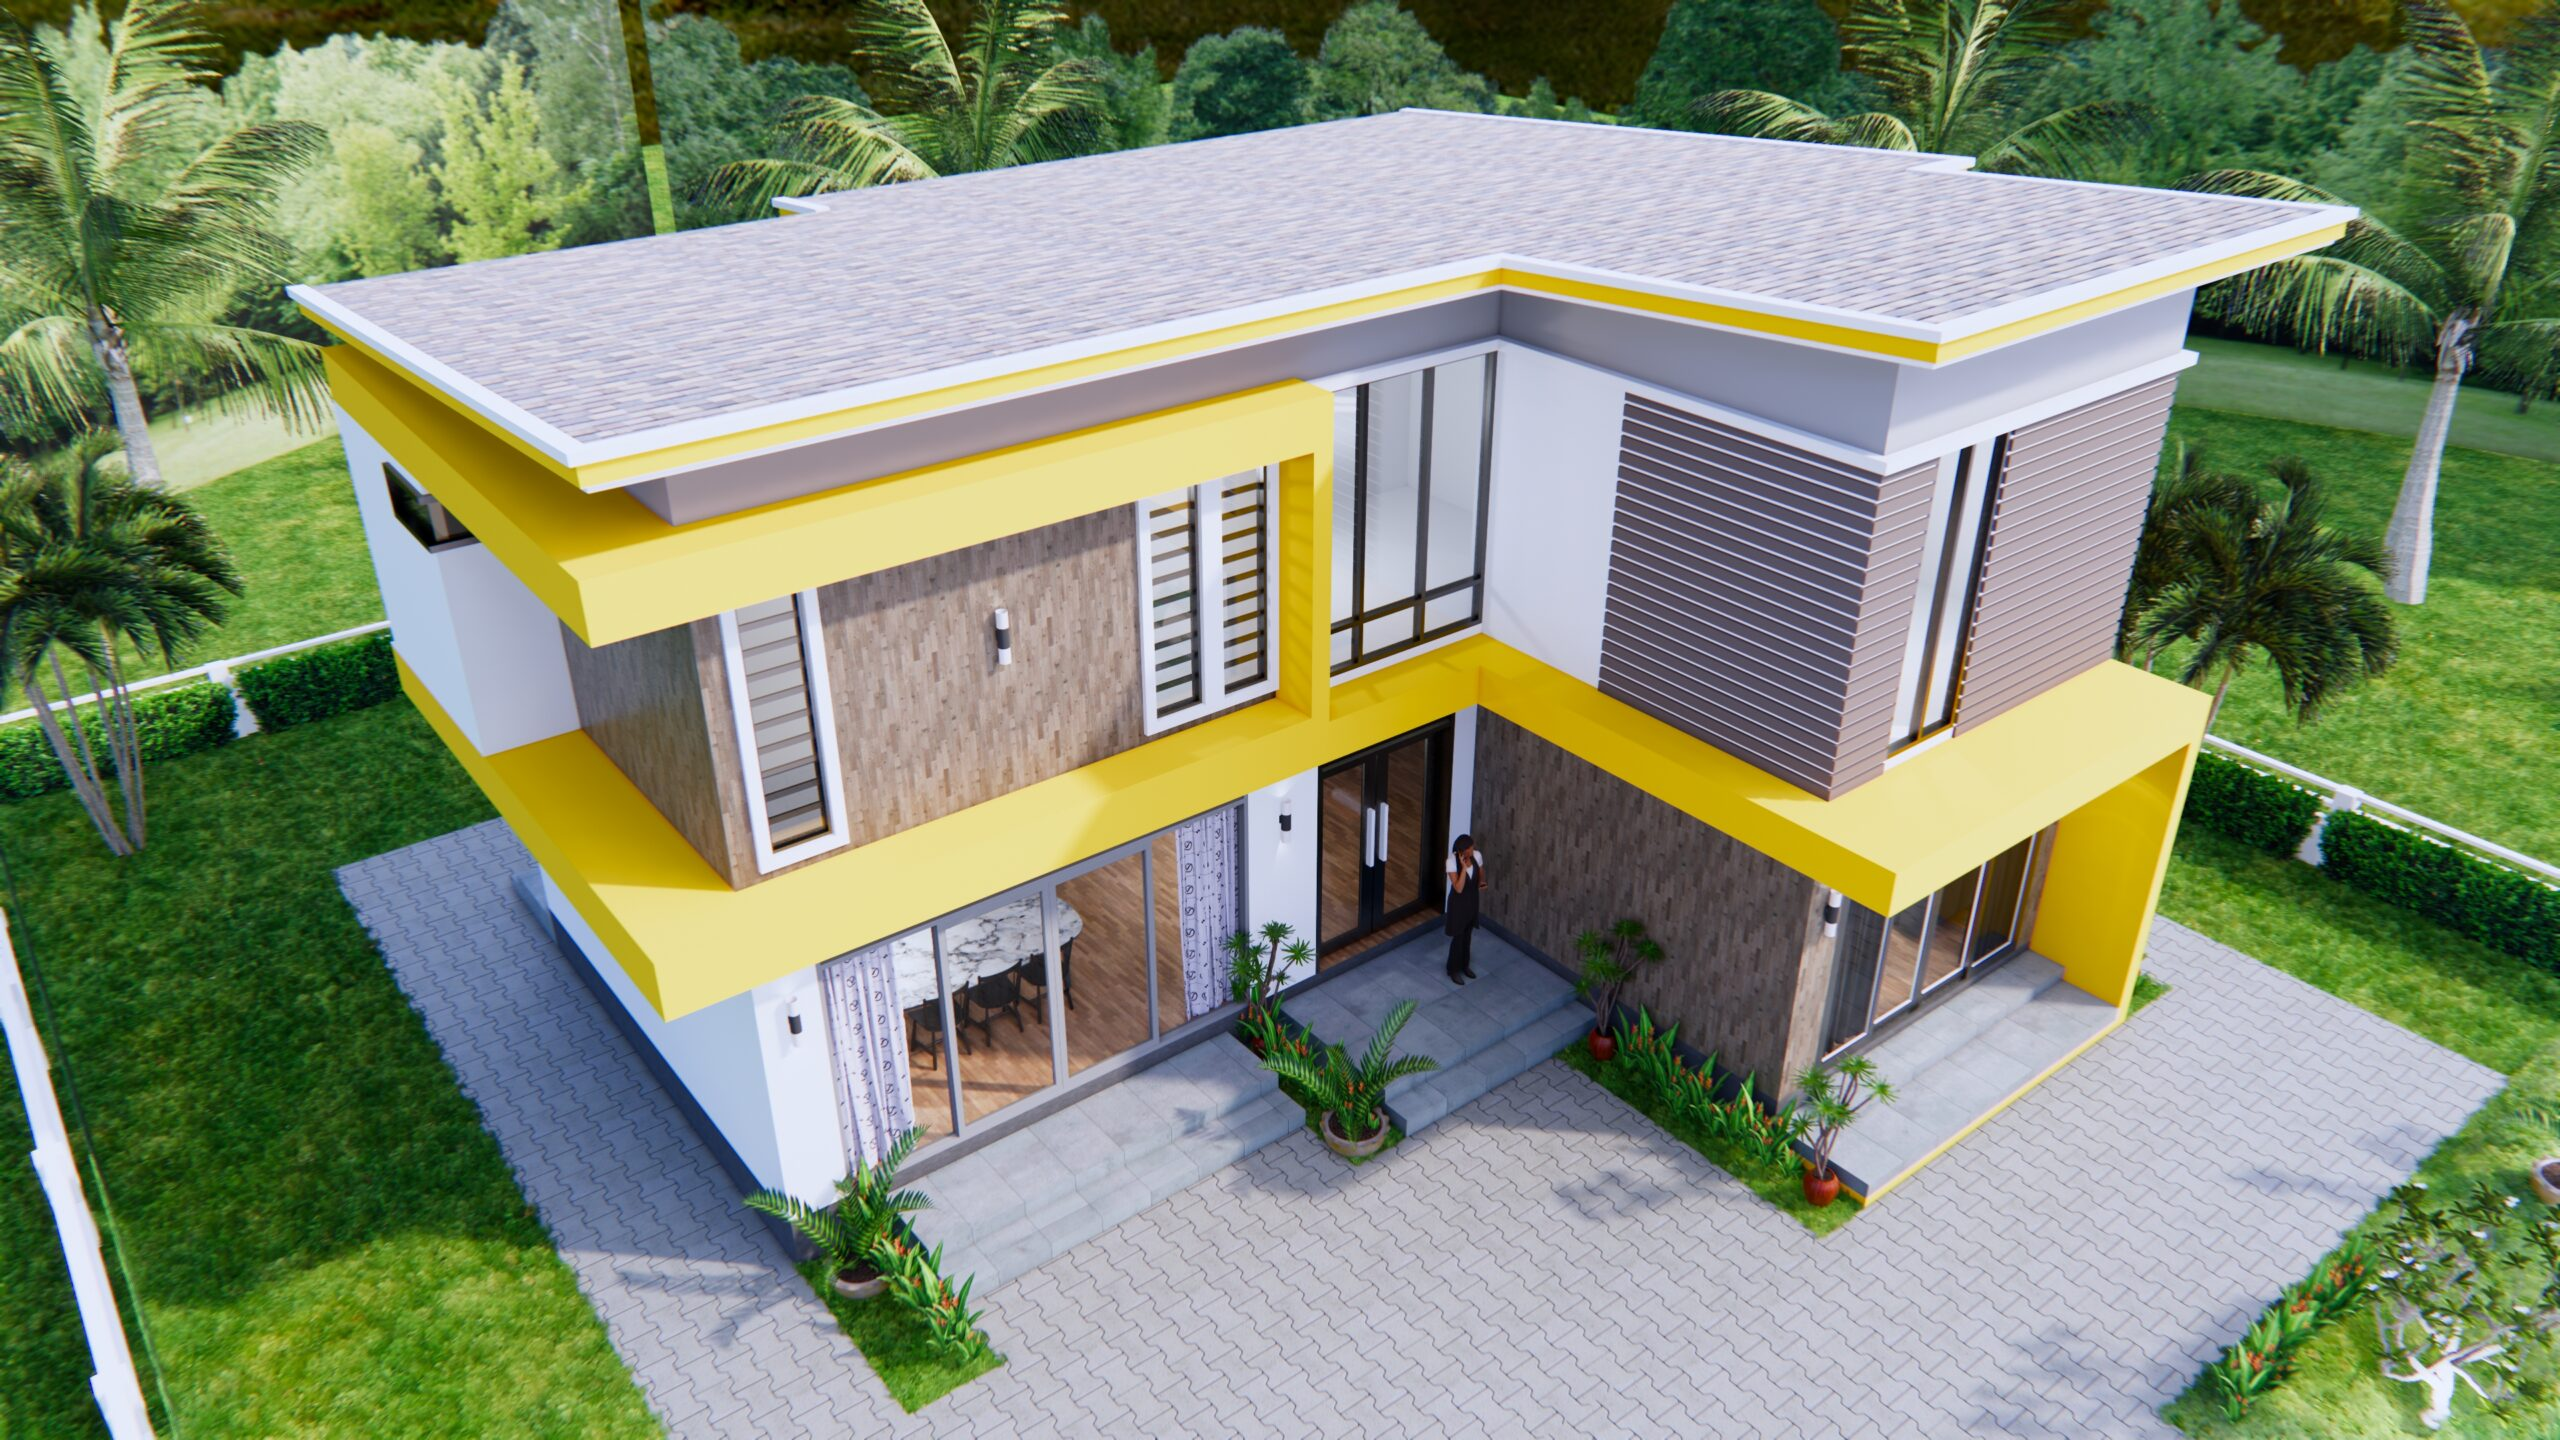 House Design 12.4x11 Meter 41x35 Feet 4 Beds 3